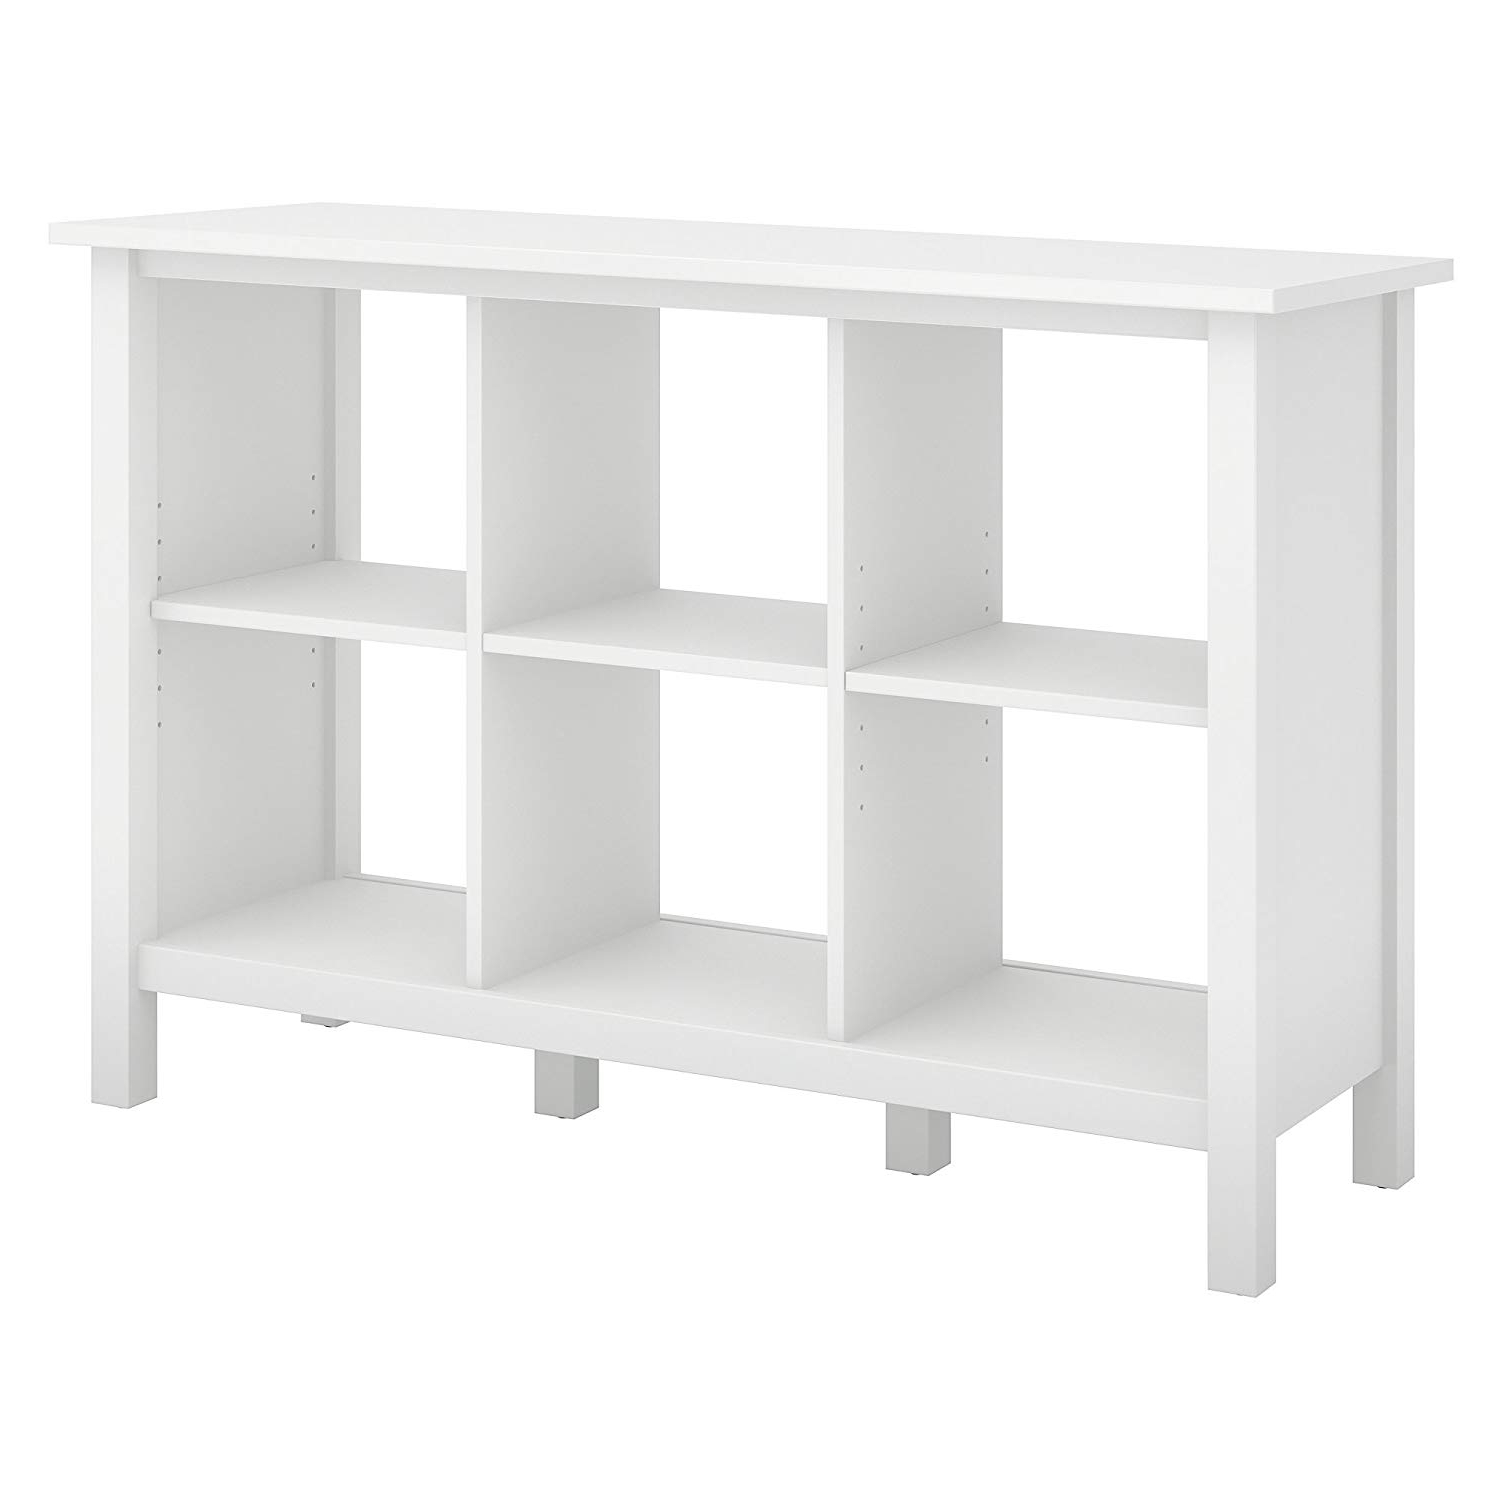 Broadview Cube Unit Bookcases For Most Recent Bush Furniture Broadview 6 Cube Storage Bookcase In Pure White (View 3 of 20)